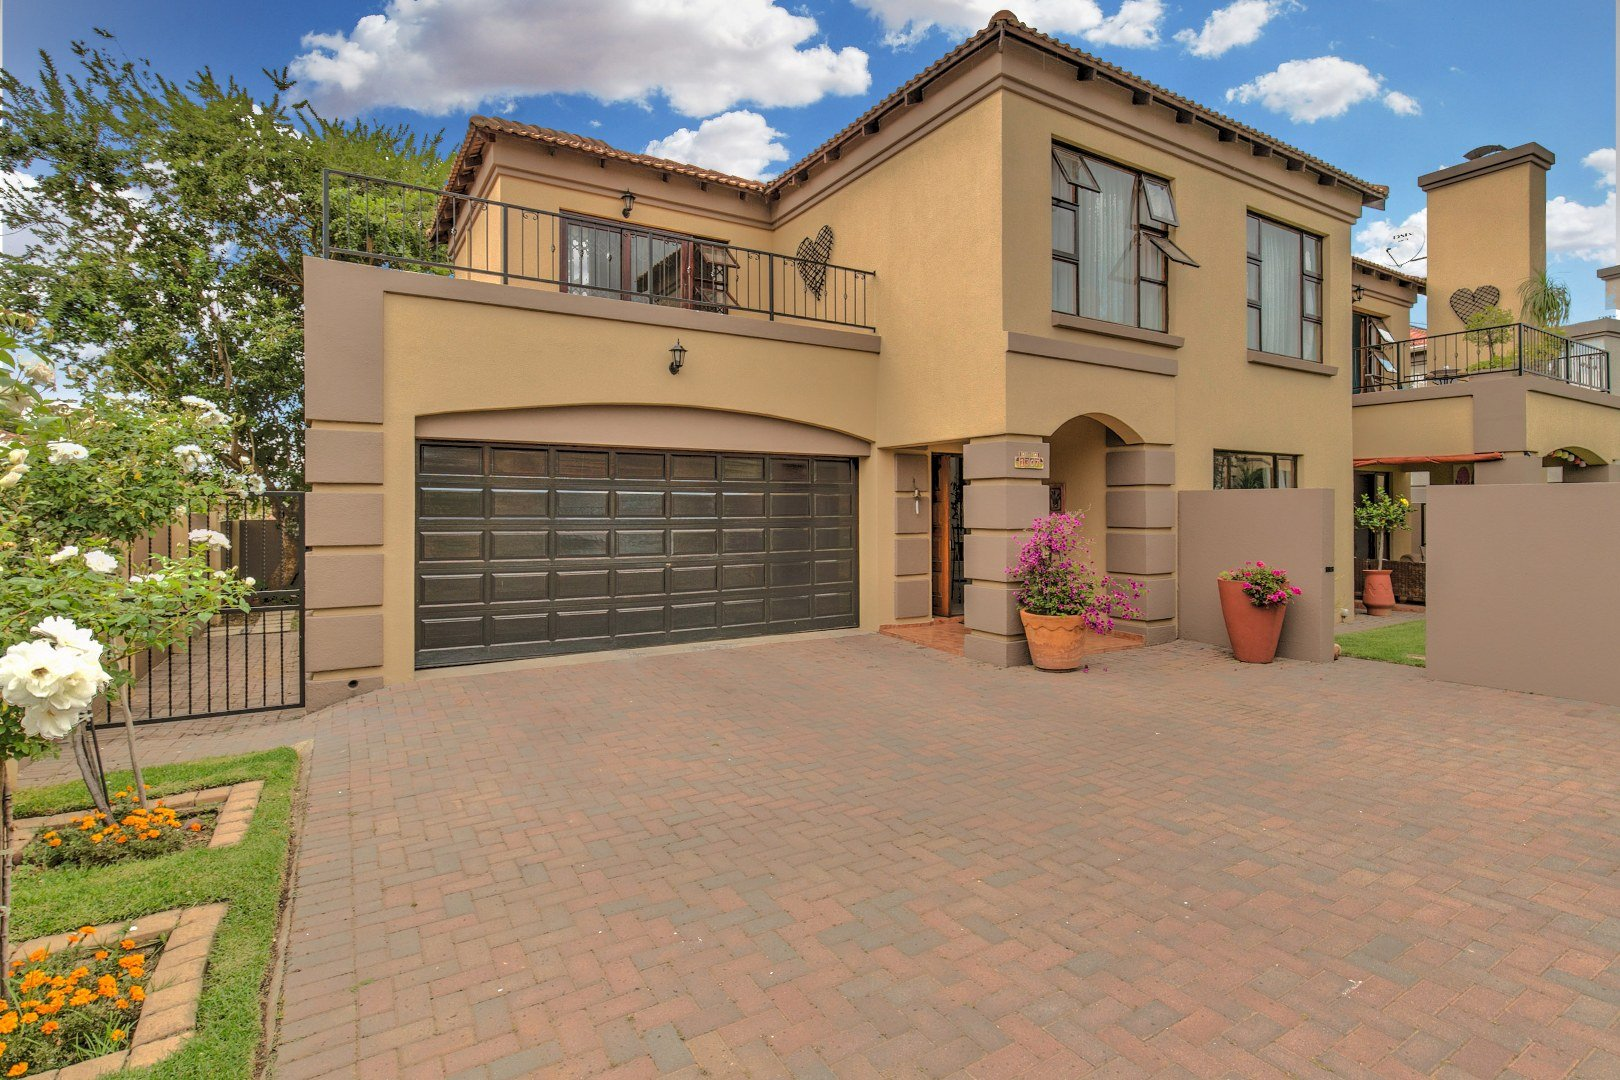 Johannesburg, Mulbarton Property  | Houses For Sale Mulbarton, Mulbarton, House 4 bedrooms property for sale Price:3,180,000